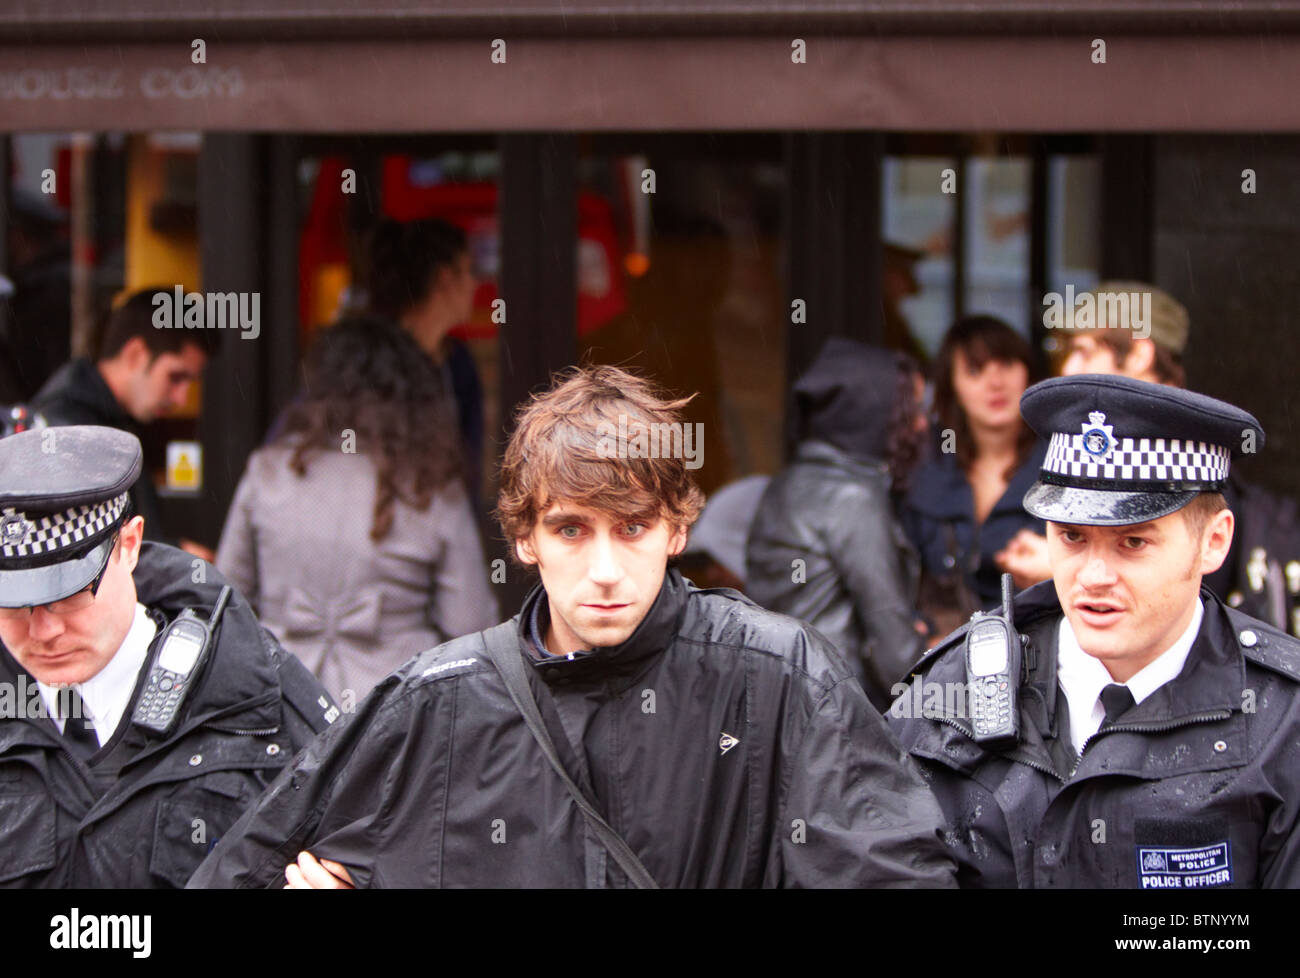 Man is arrested after attending an illegal rave in Central London - Stock Image